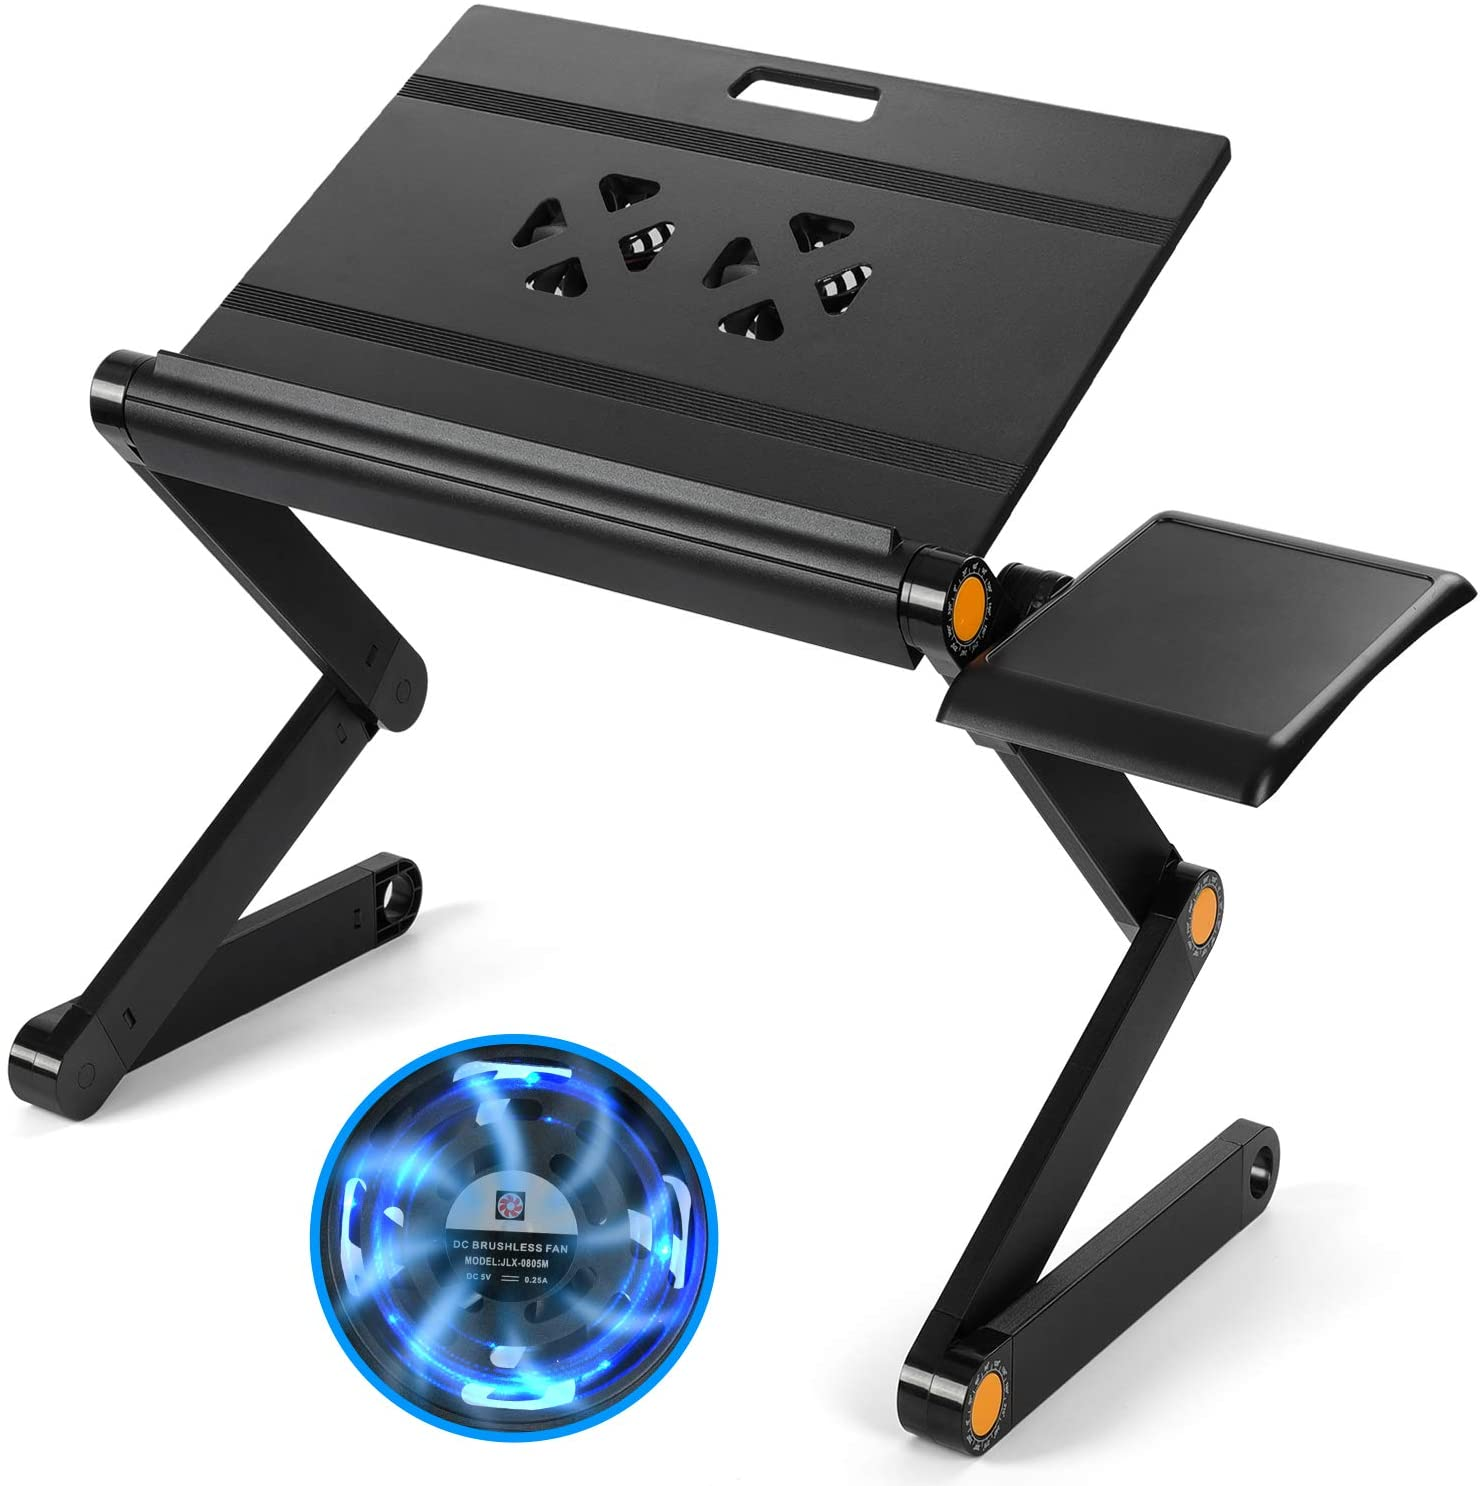 Huanhuo Adjustable Laptop Stand